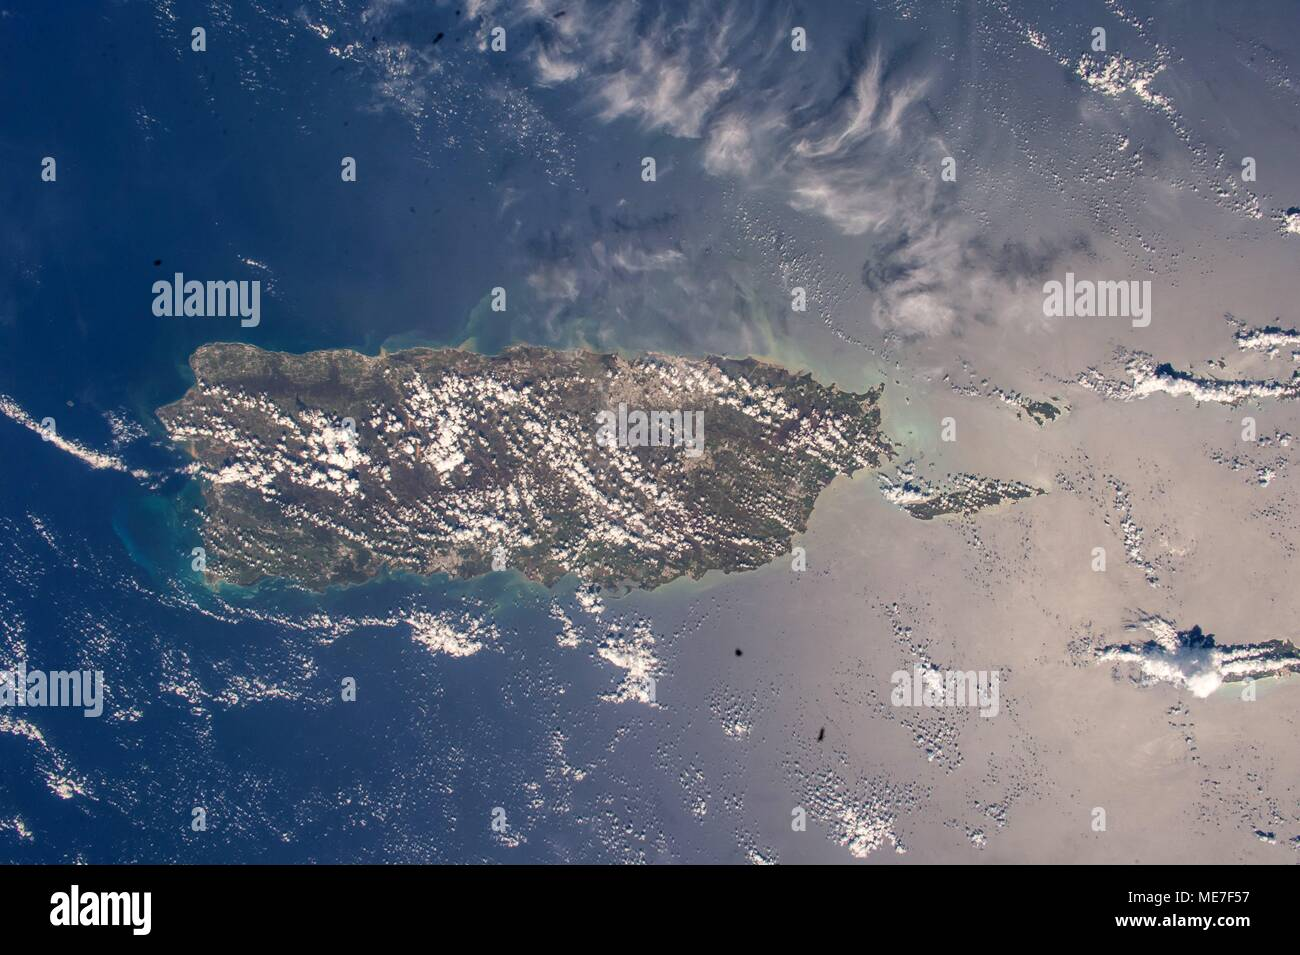 A satellite view of Puerto Rico as seen from the NASA ... on nasa earth real-time, cia satellite map, sports satellite map, world earth globe map, planet earth world map, sir francis drake route world map, microsoft satellite map, atlantic water vapor map, asia satellite map, live satellite world map, california satellite map, aqua satellite map, animals satellite map, chemtrail satellite map, mars satellite map, high resolution satellite world map, new york state satellite map, nasa asia, nasa earth maps, google satellite map,